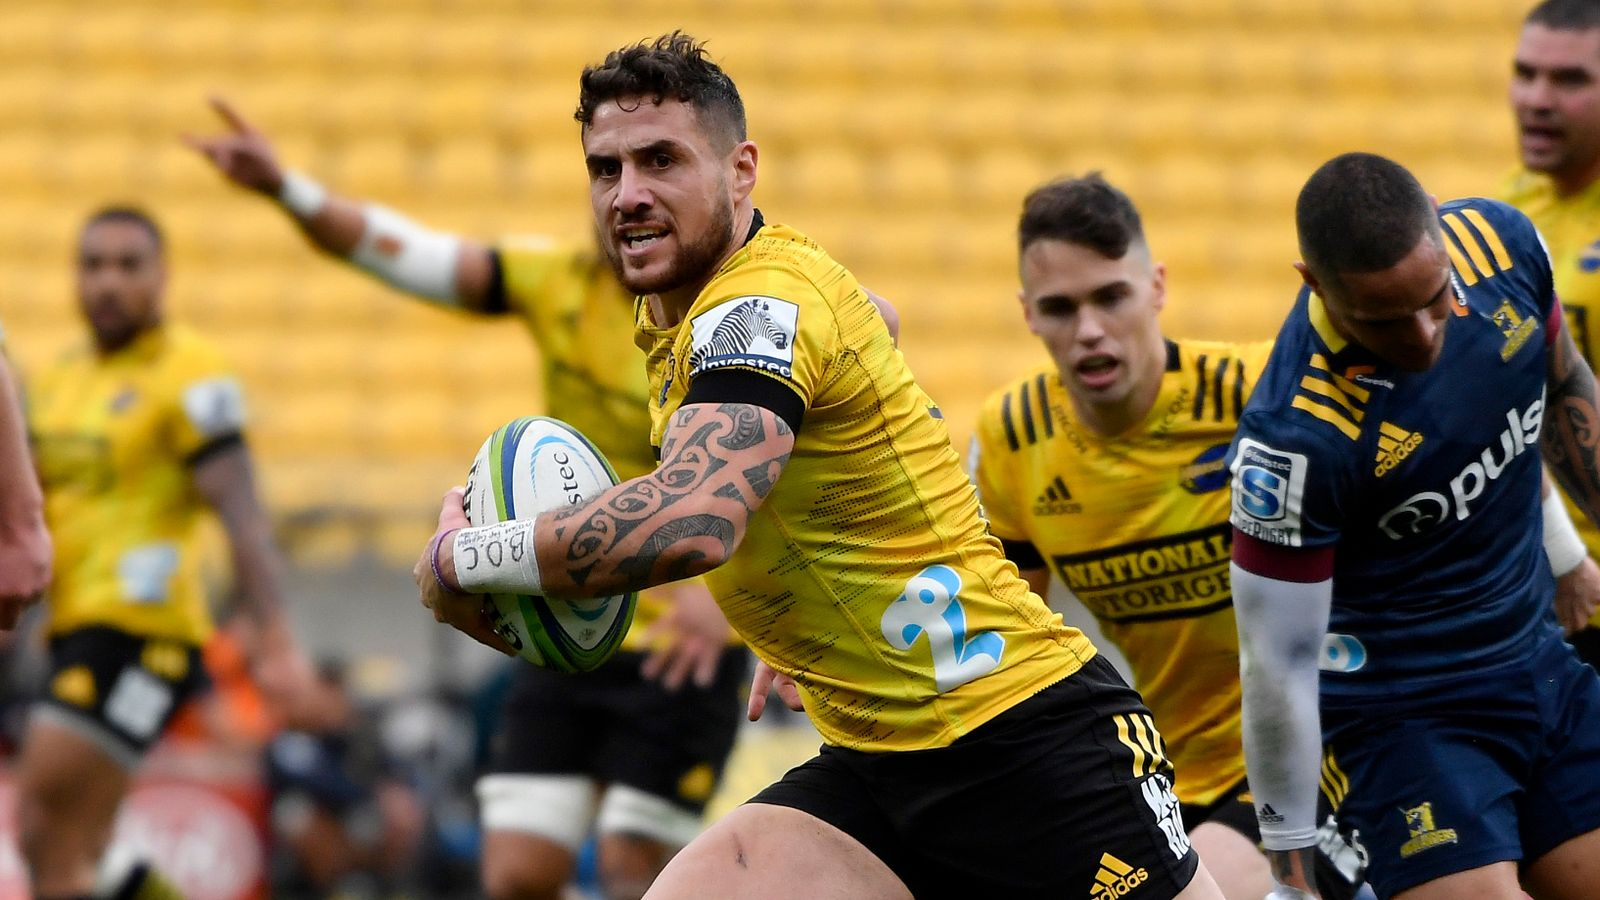 Super Rugby: Team of the Week - Super Rugby Aotearoa and Super Rugby AU